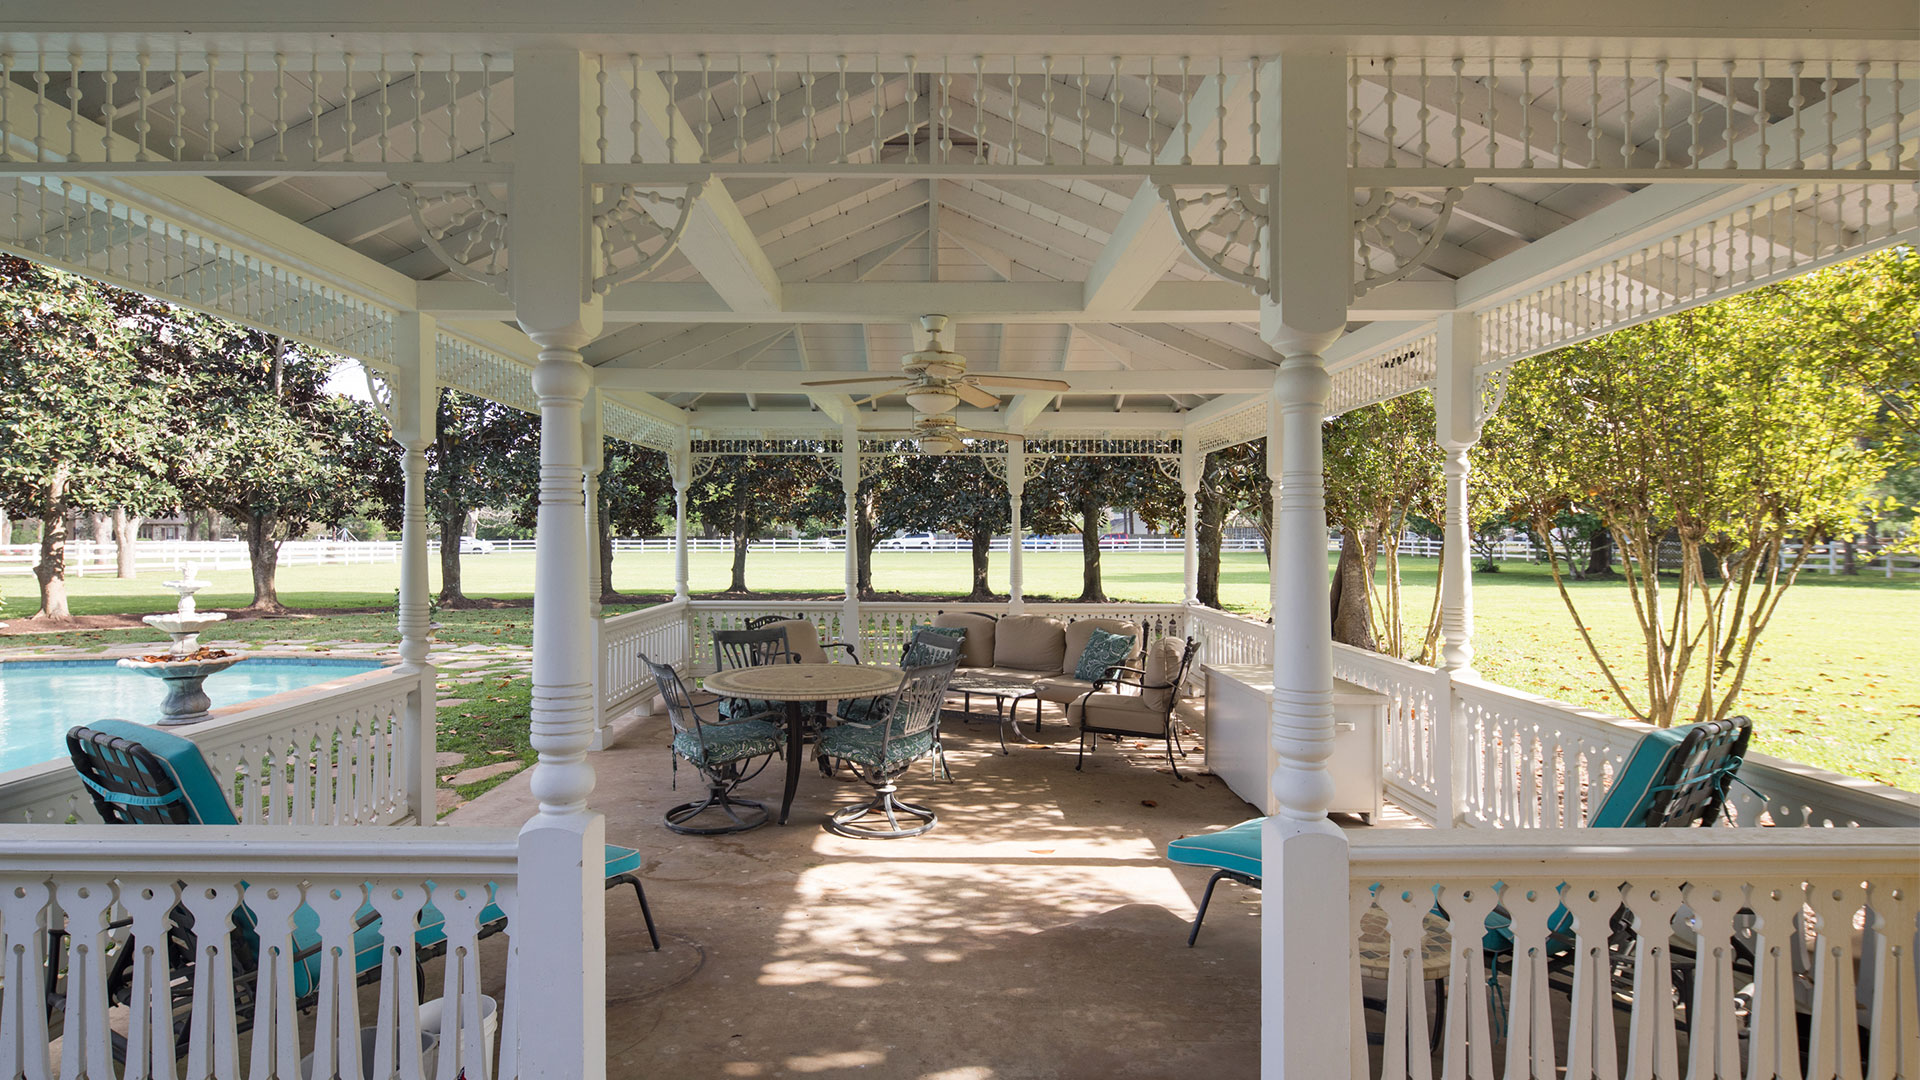 RX_1810_Sugar Land Victorian Pecan Manor Gazebo